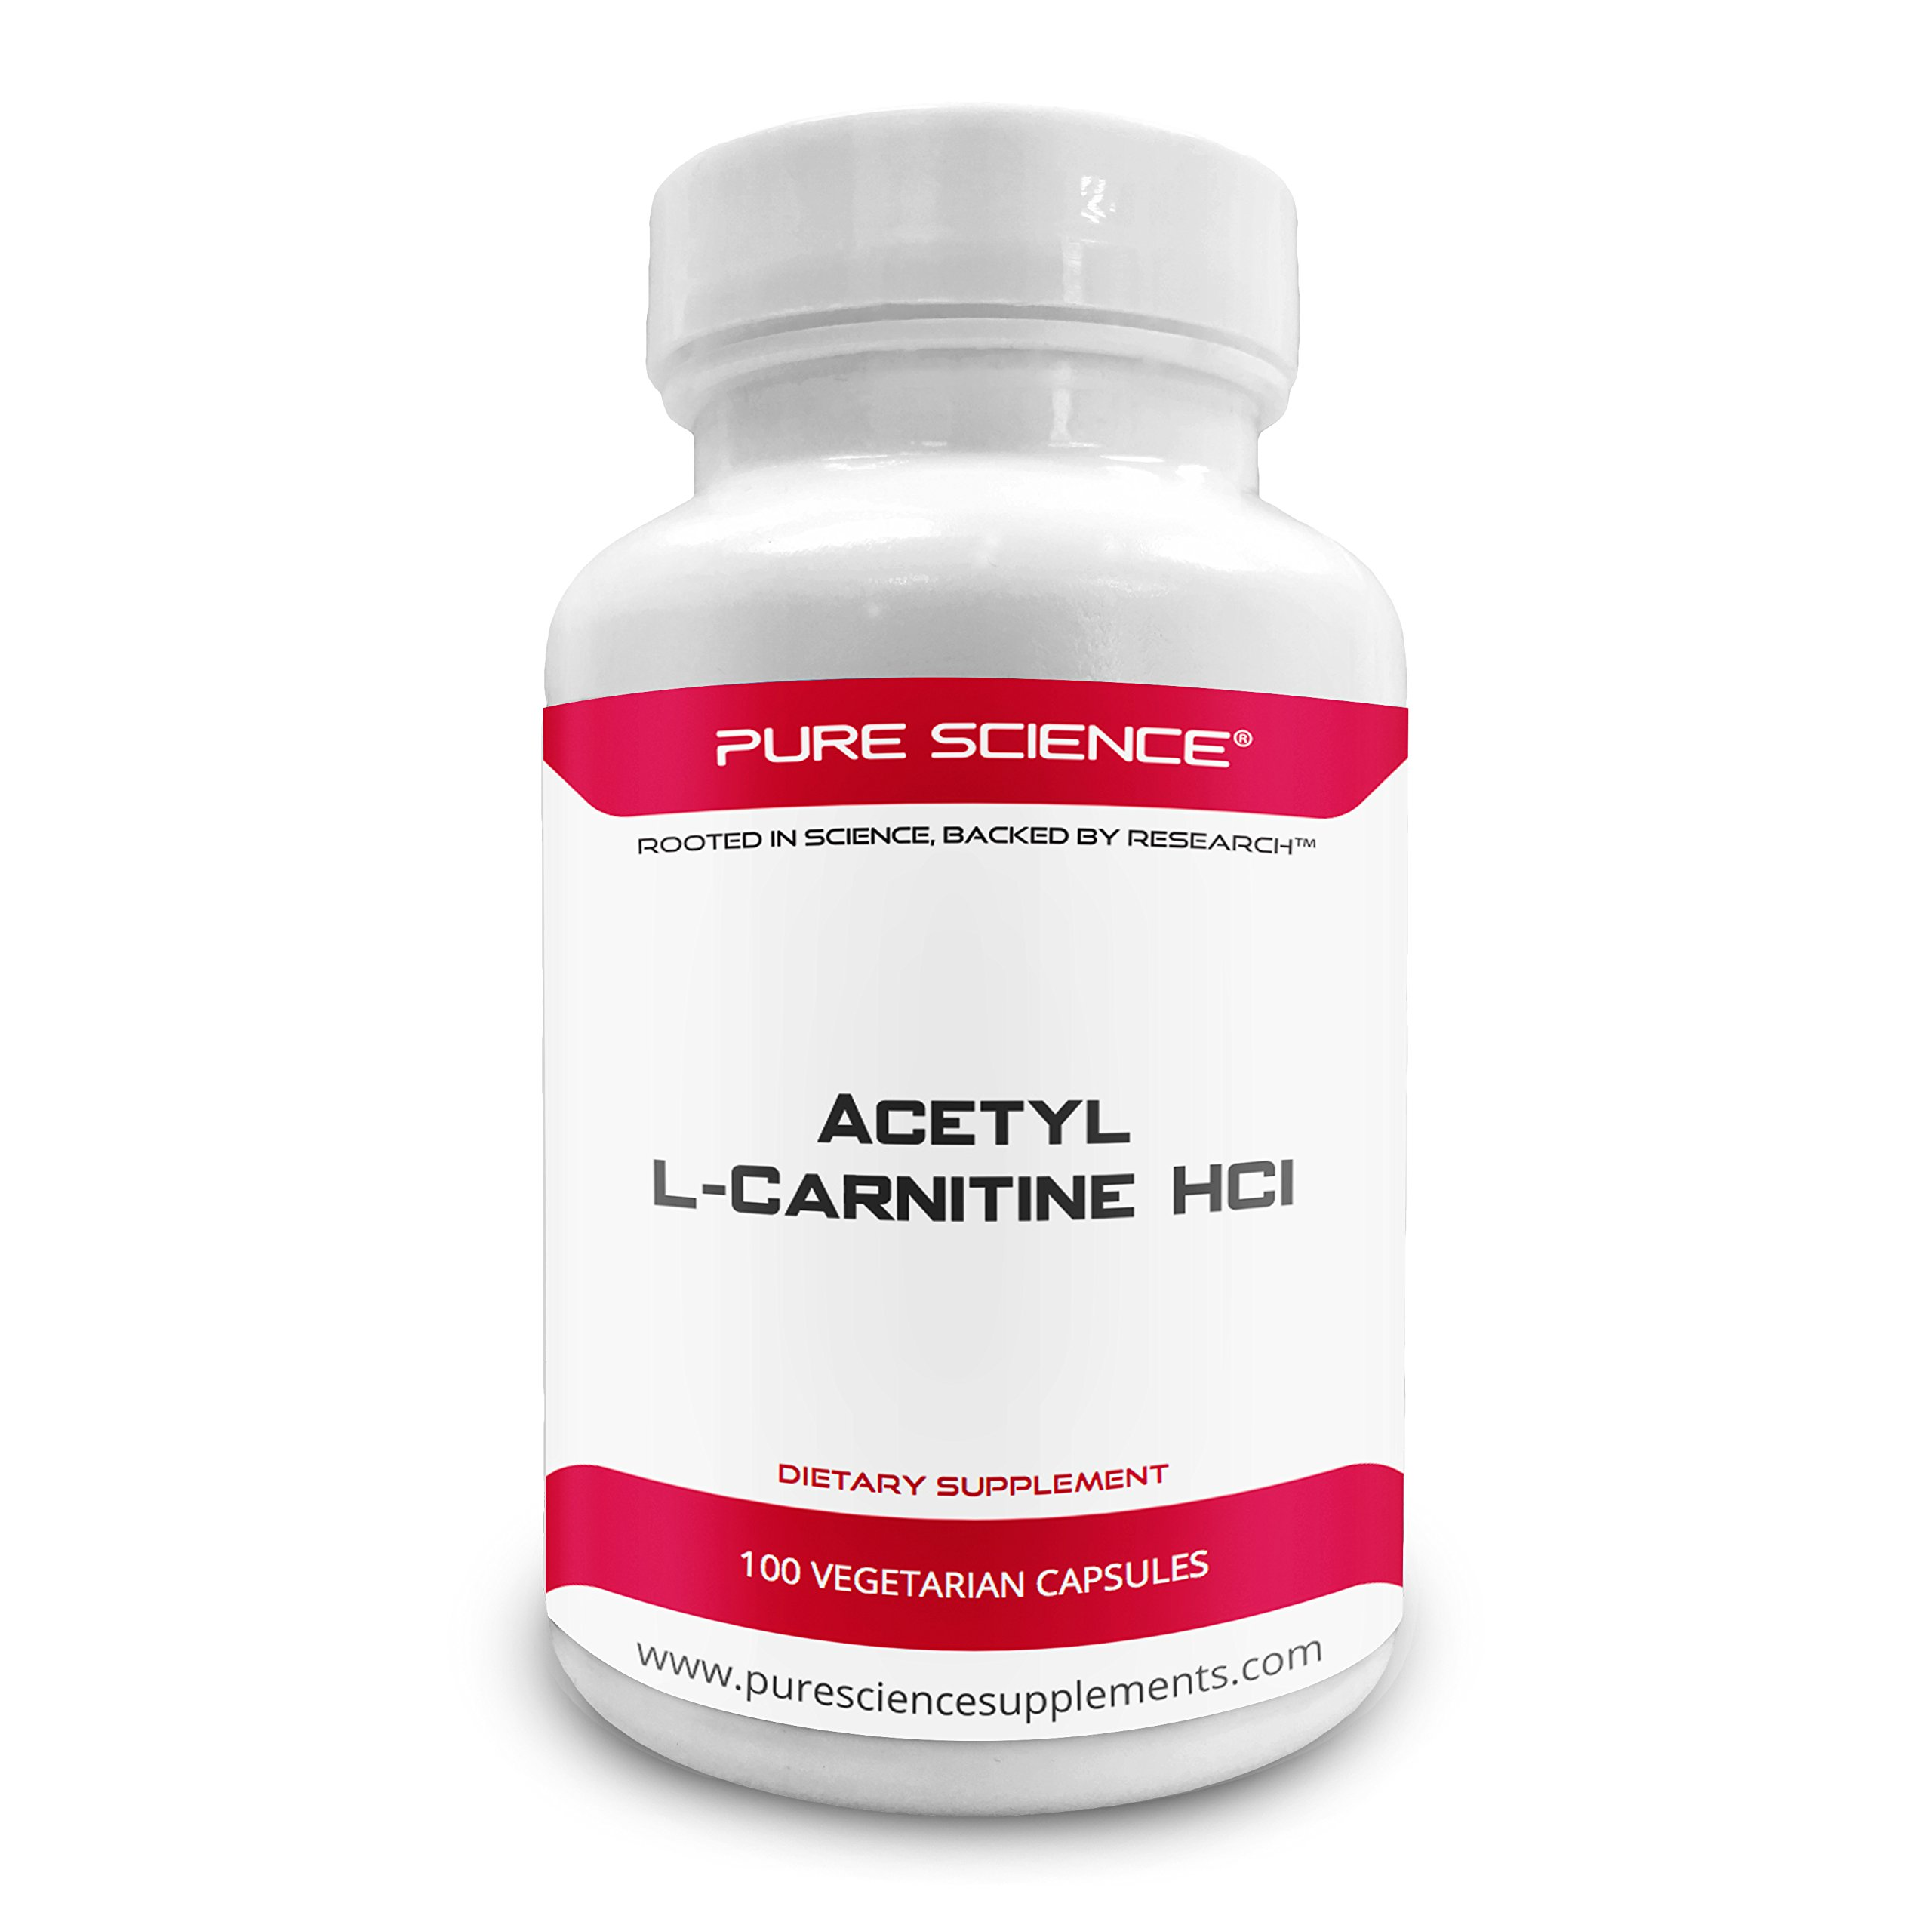 Pure Science Acetyl L-Carnitine HCI 525mg - Great for Mesomorph Body Type, Immunity, Detox & Brain Support - 100 Vegetarian Capsules of Acetyl L-Carnitine Powder